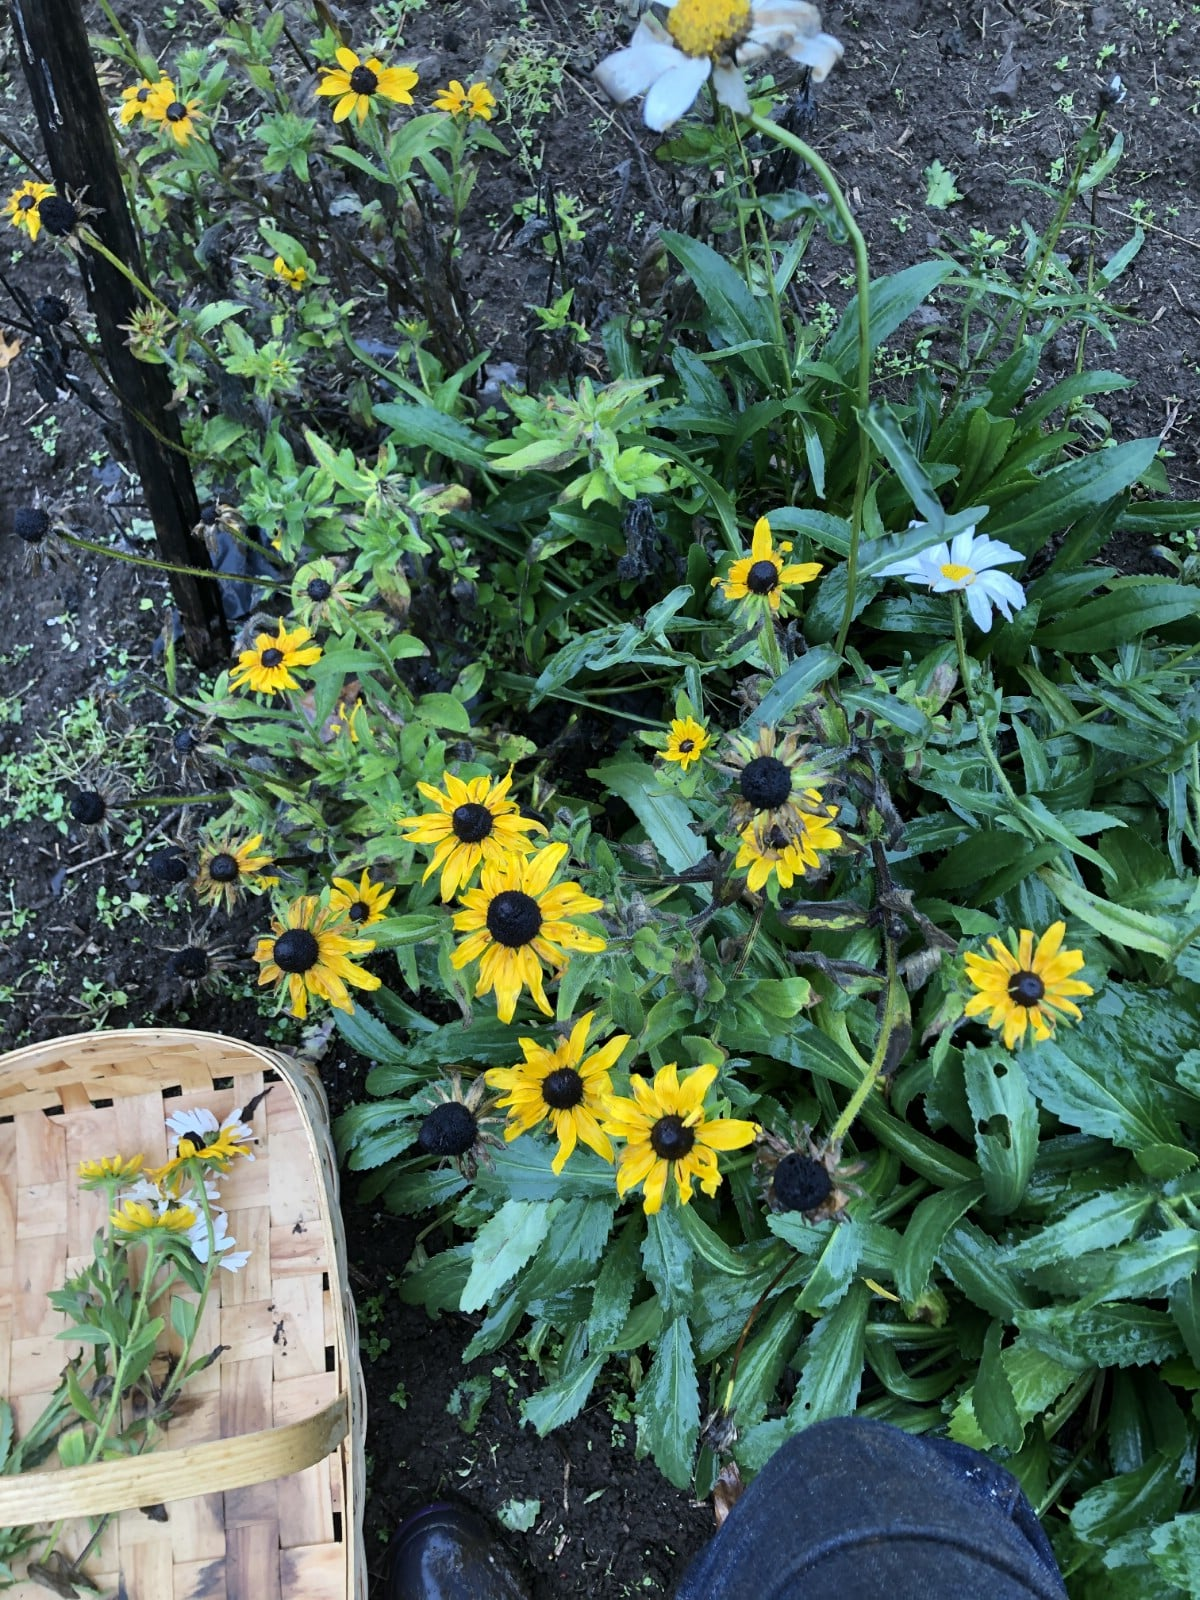 Black eyed susans and daisies planted for cut flowers